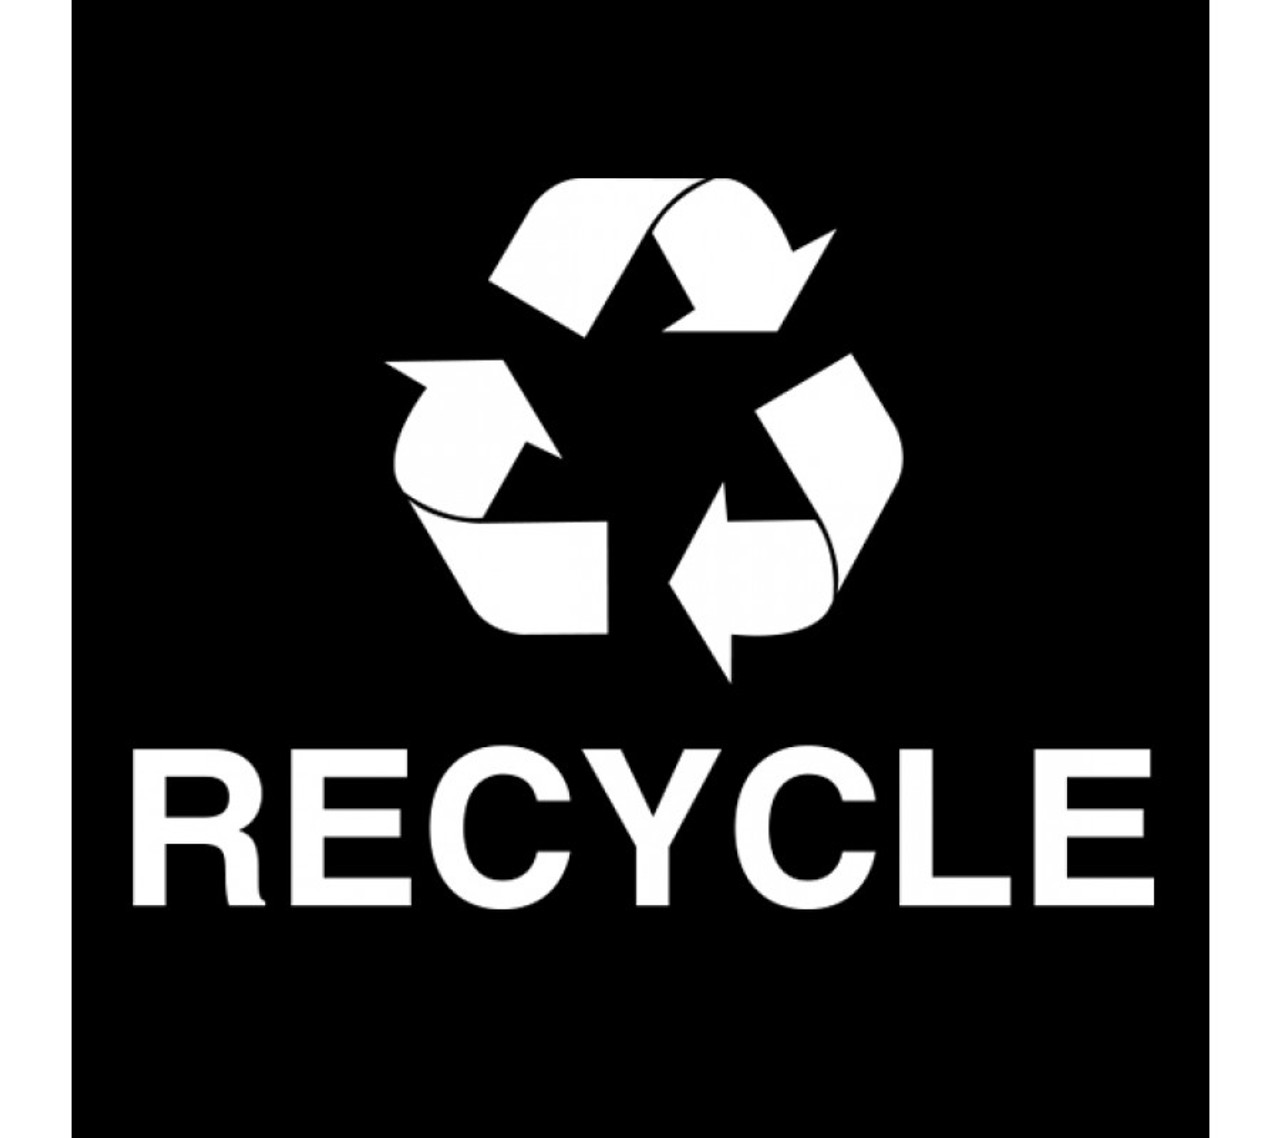 White Vinyl RECYCLE Decal for Ellipse Trash Cans 45-RGU-001 FG